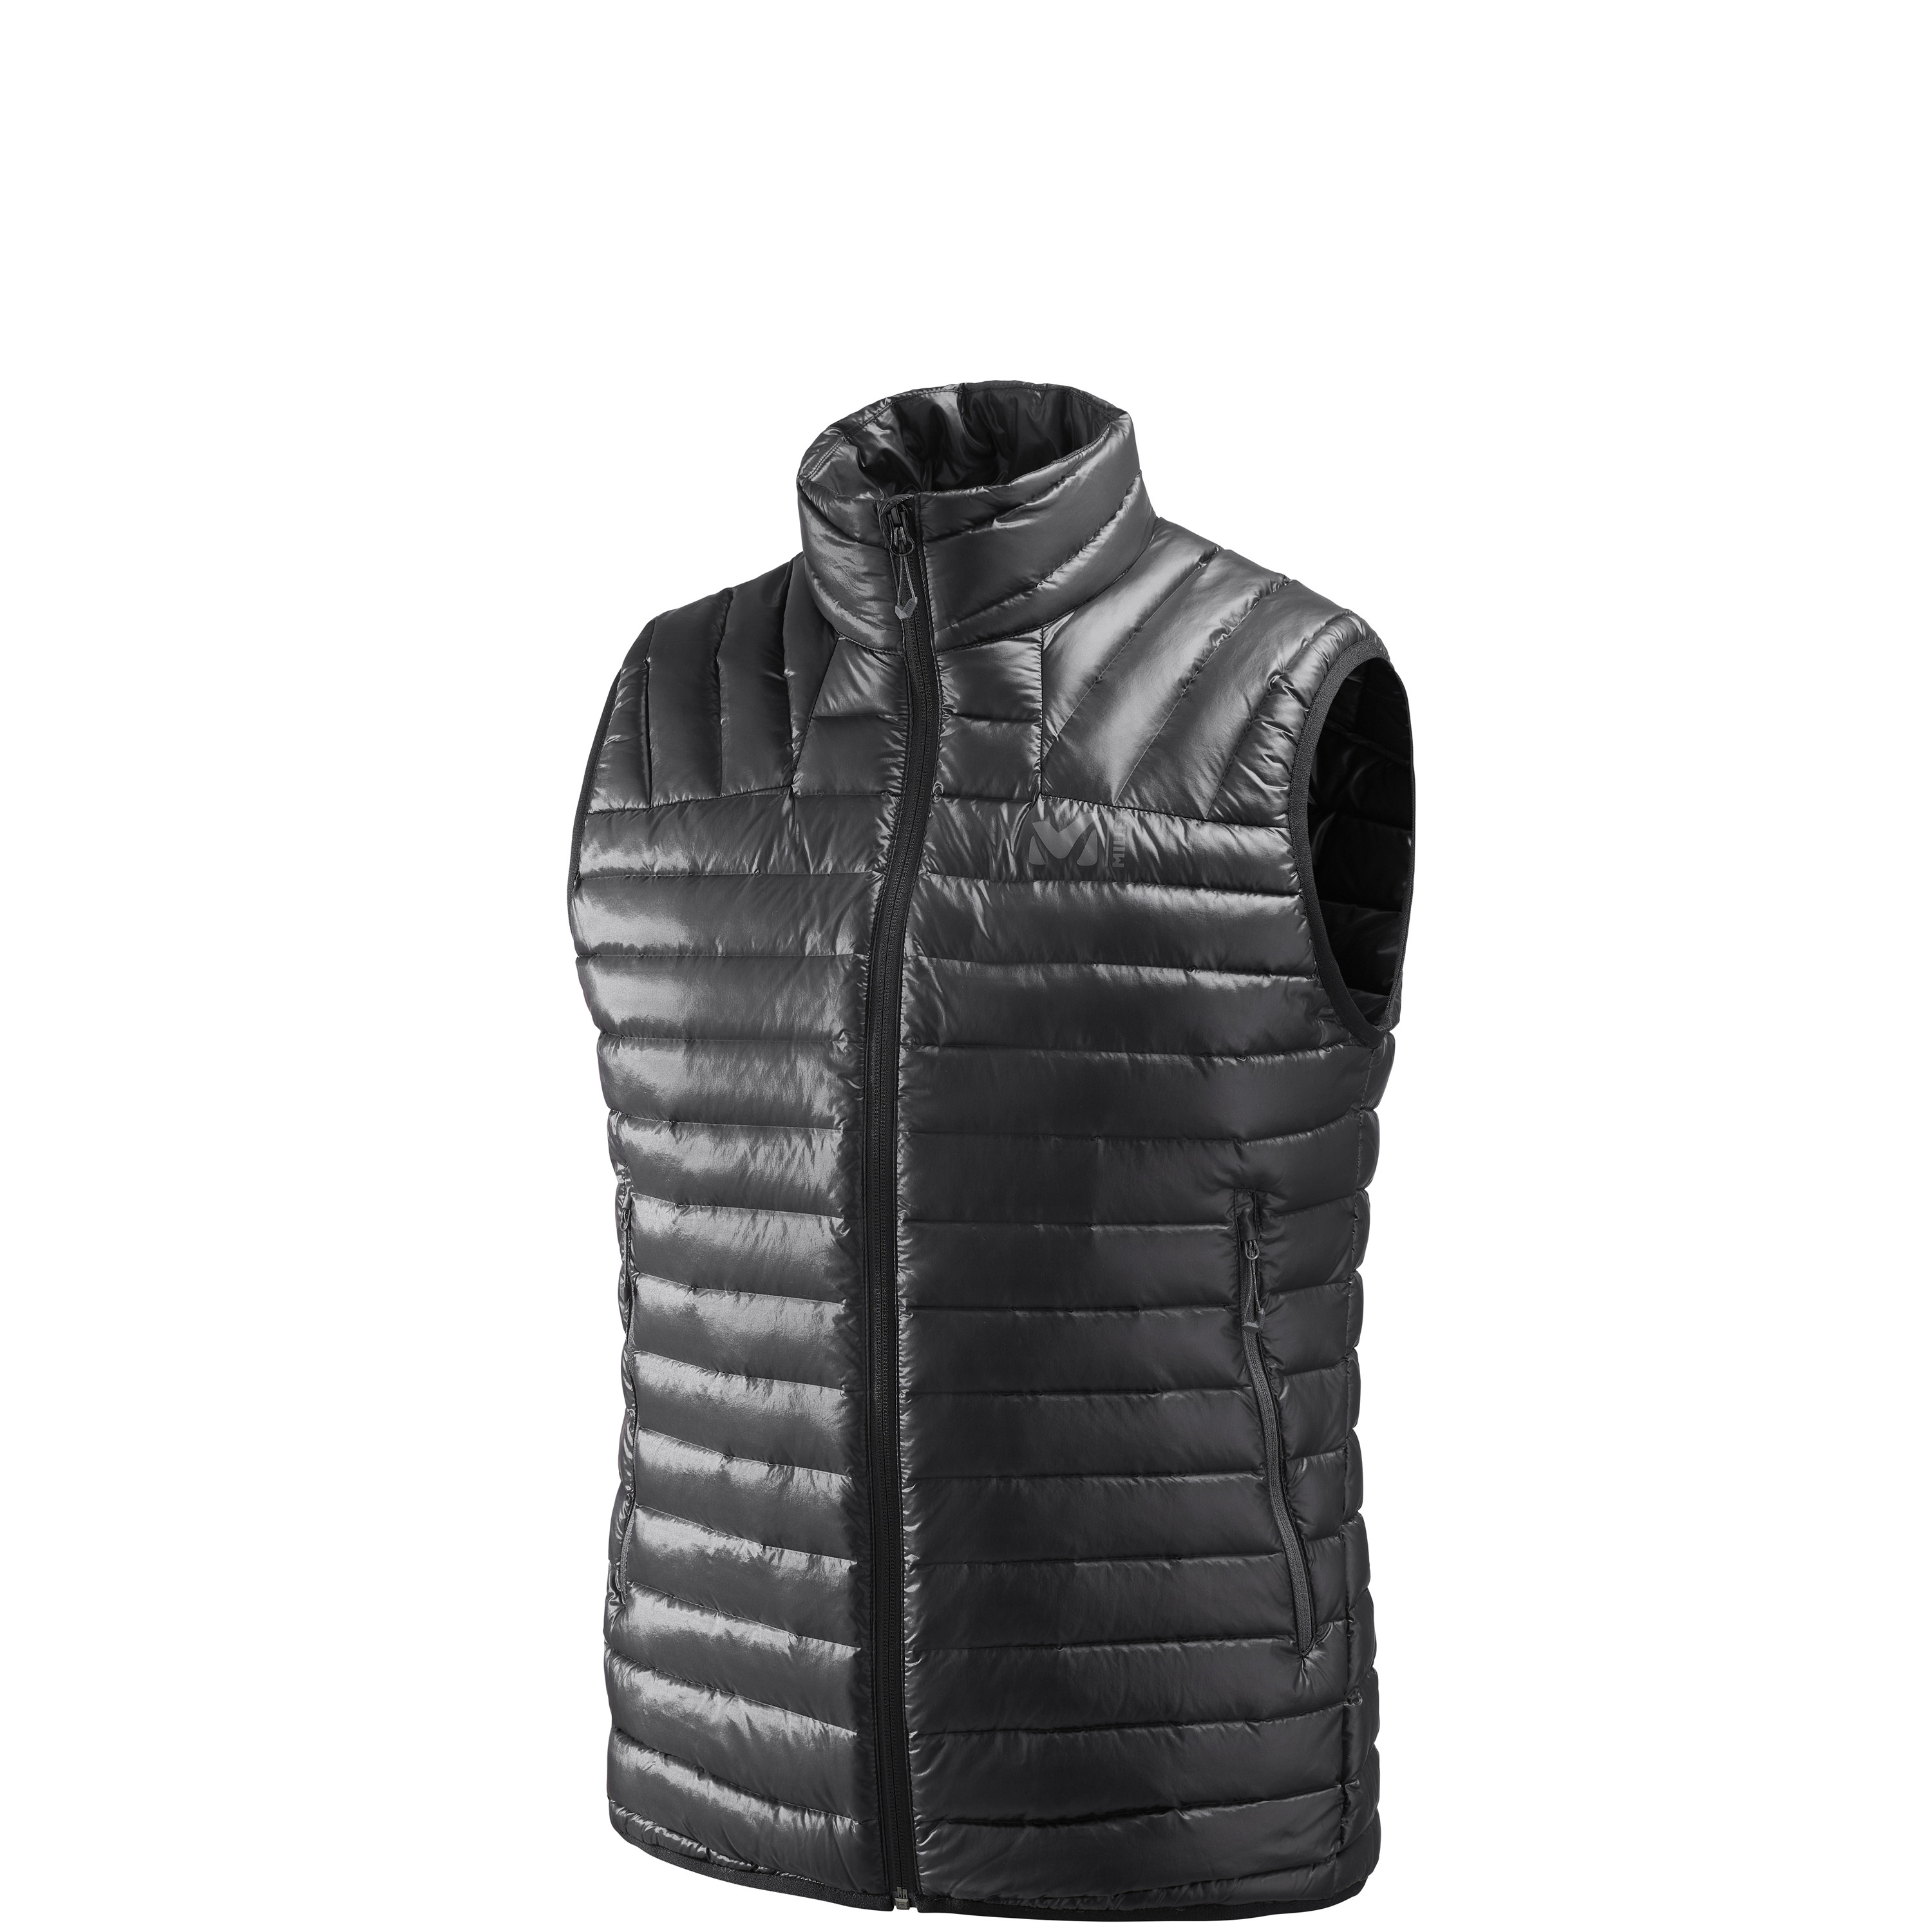 K SYNTH'X DOWN VEST M